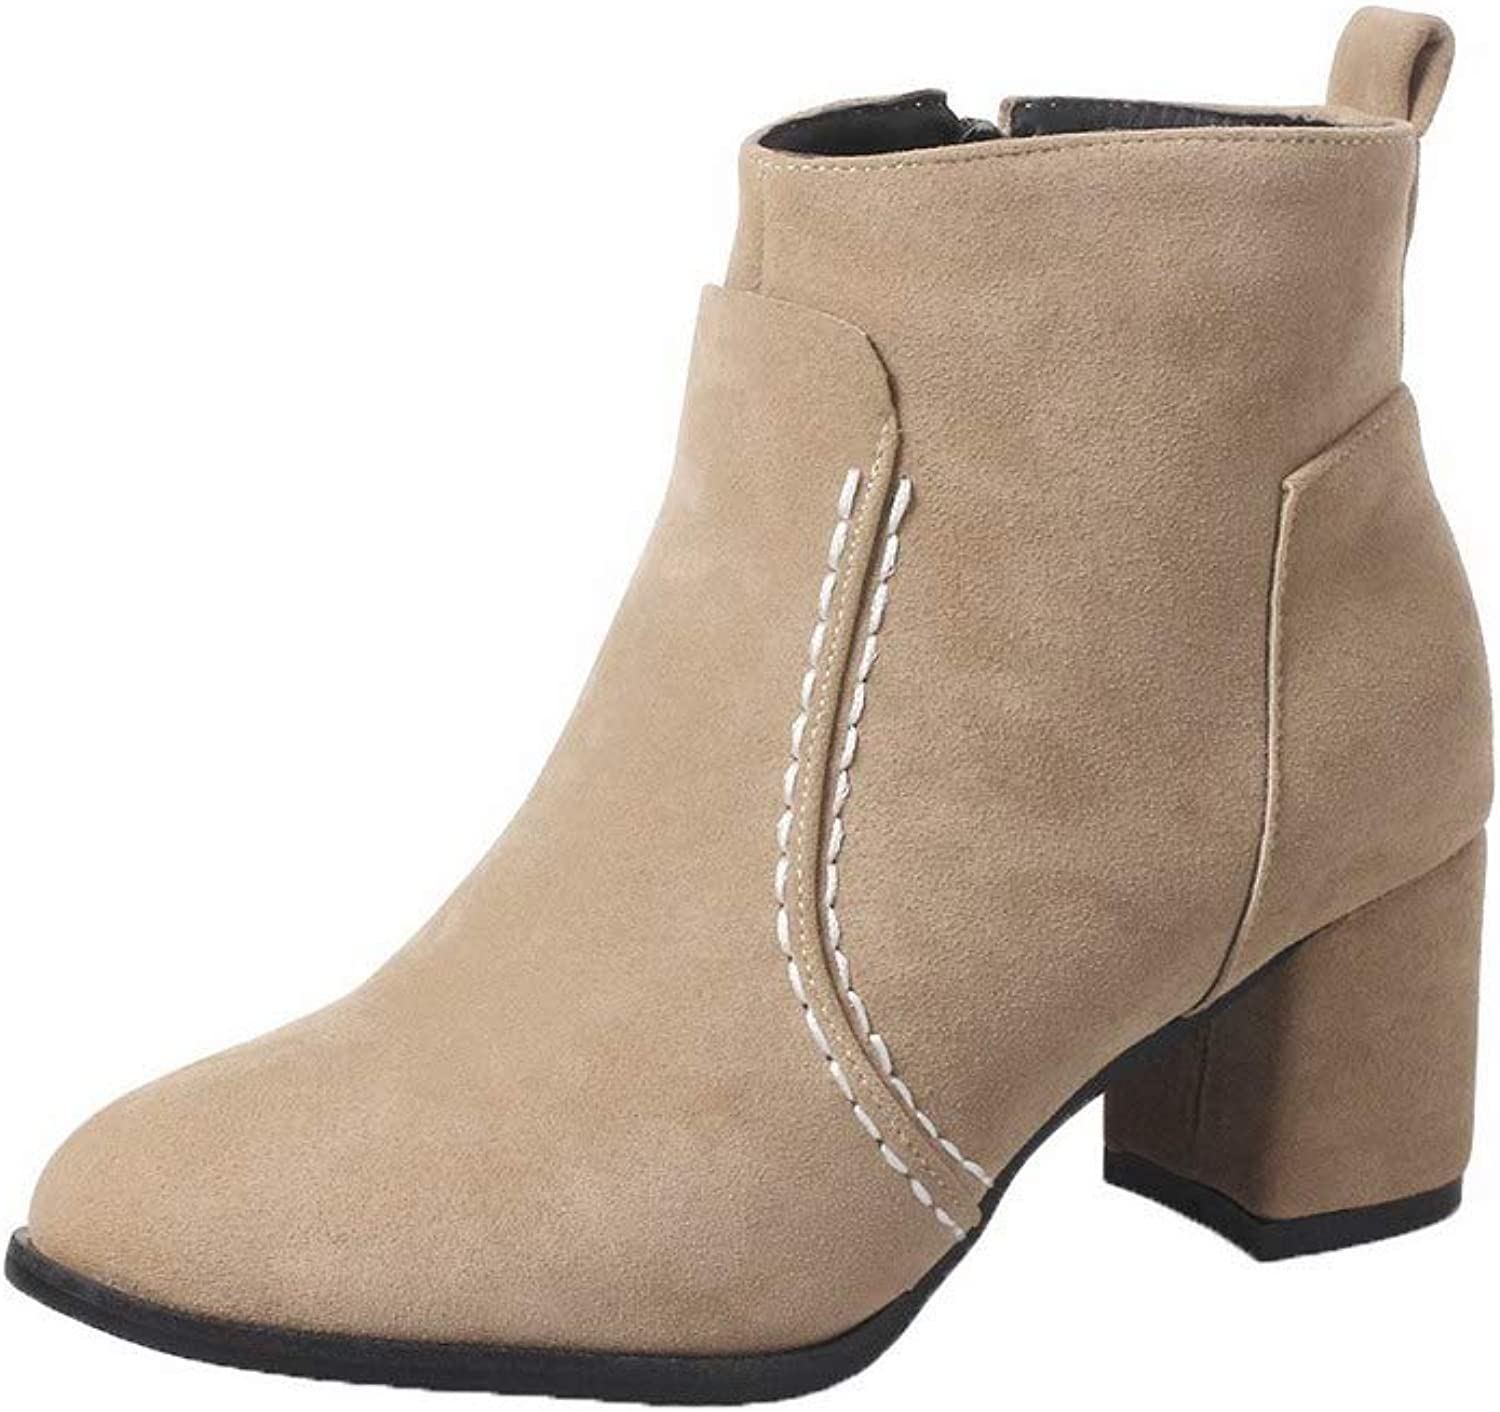 WeenFashion Women's Closed-Toe Kitten-Heels Frosted Low-Top Solid Boots, AMGXX121848